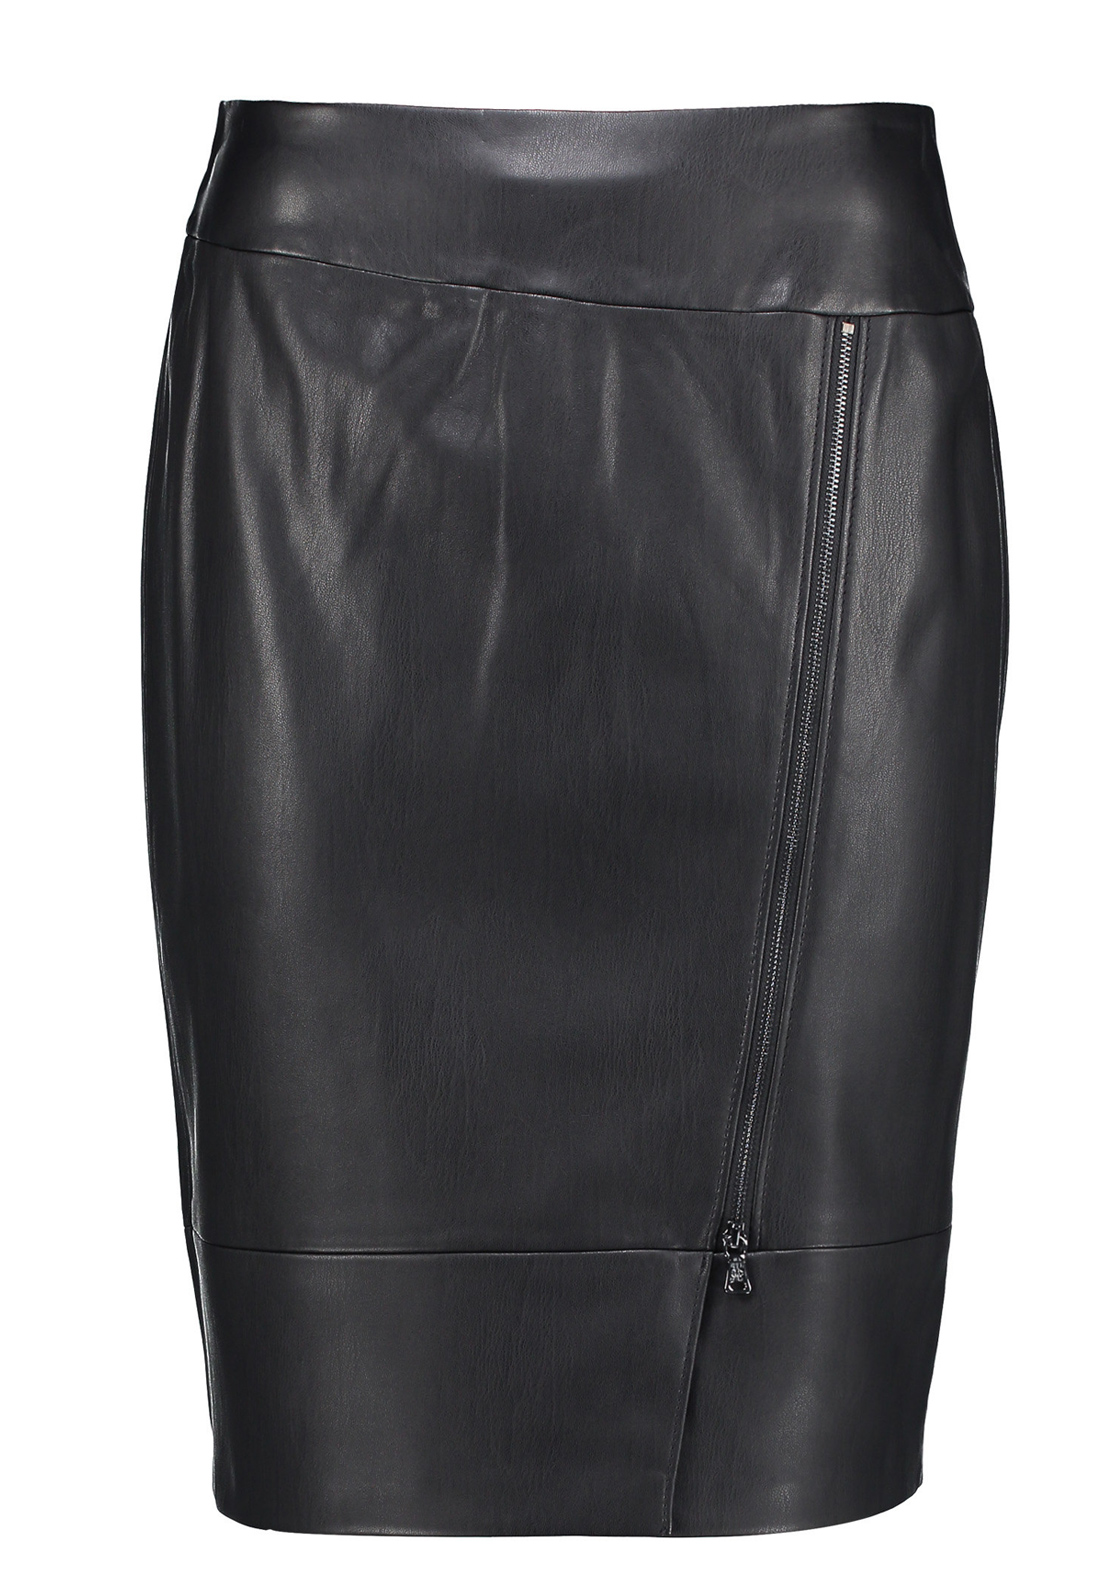 Gerry Weber Zip Detail Leather Look Pencil Skirt, Black